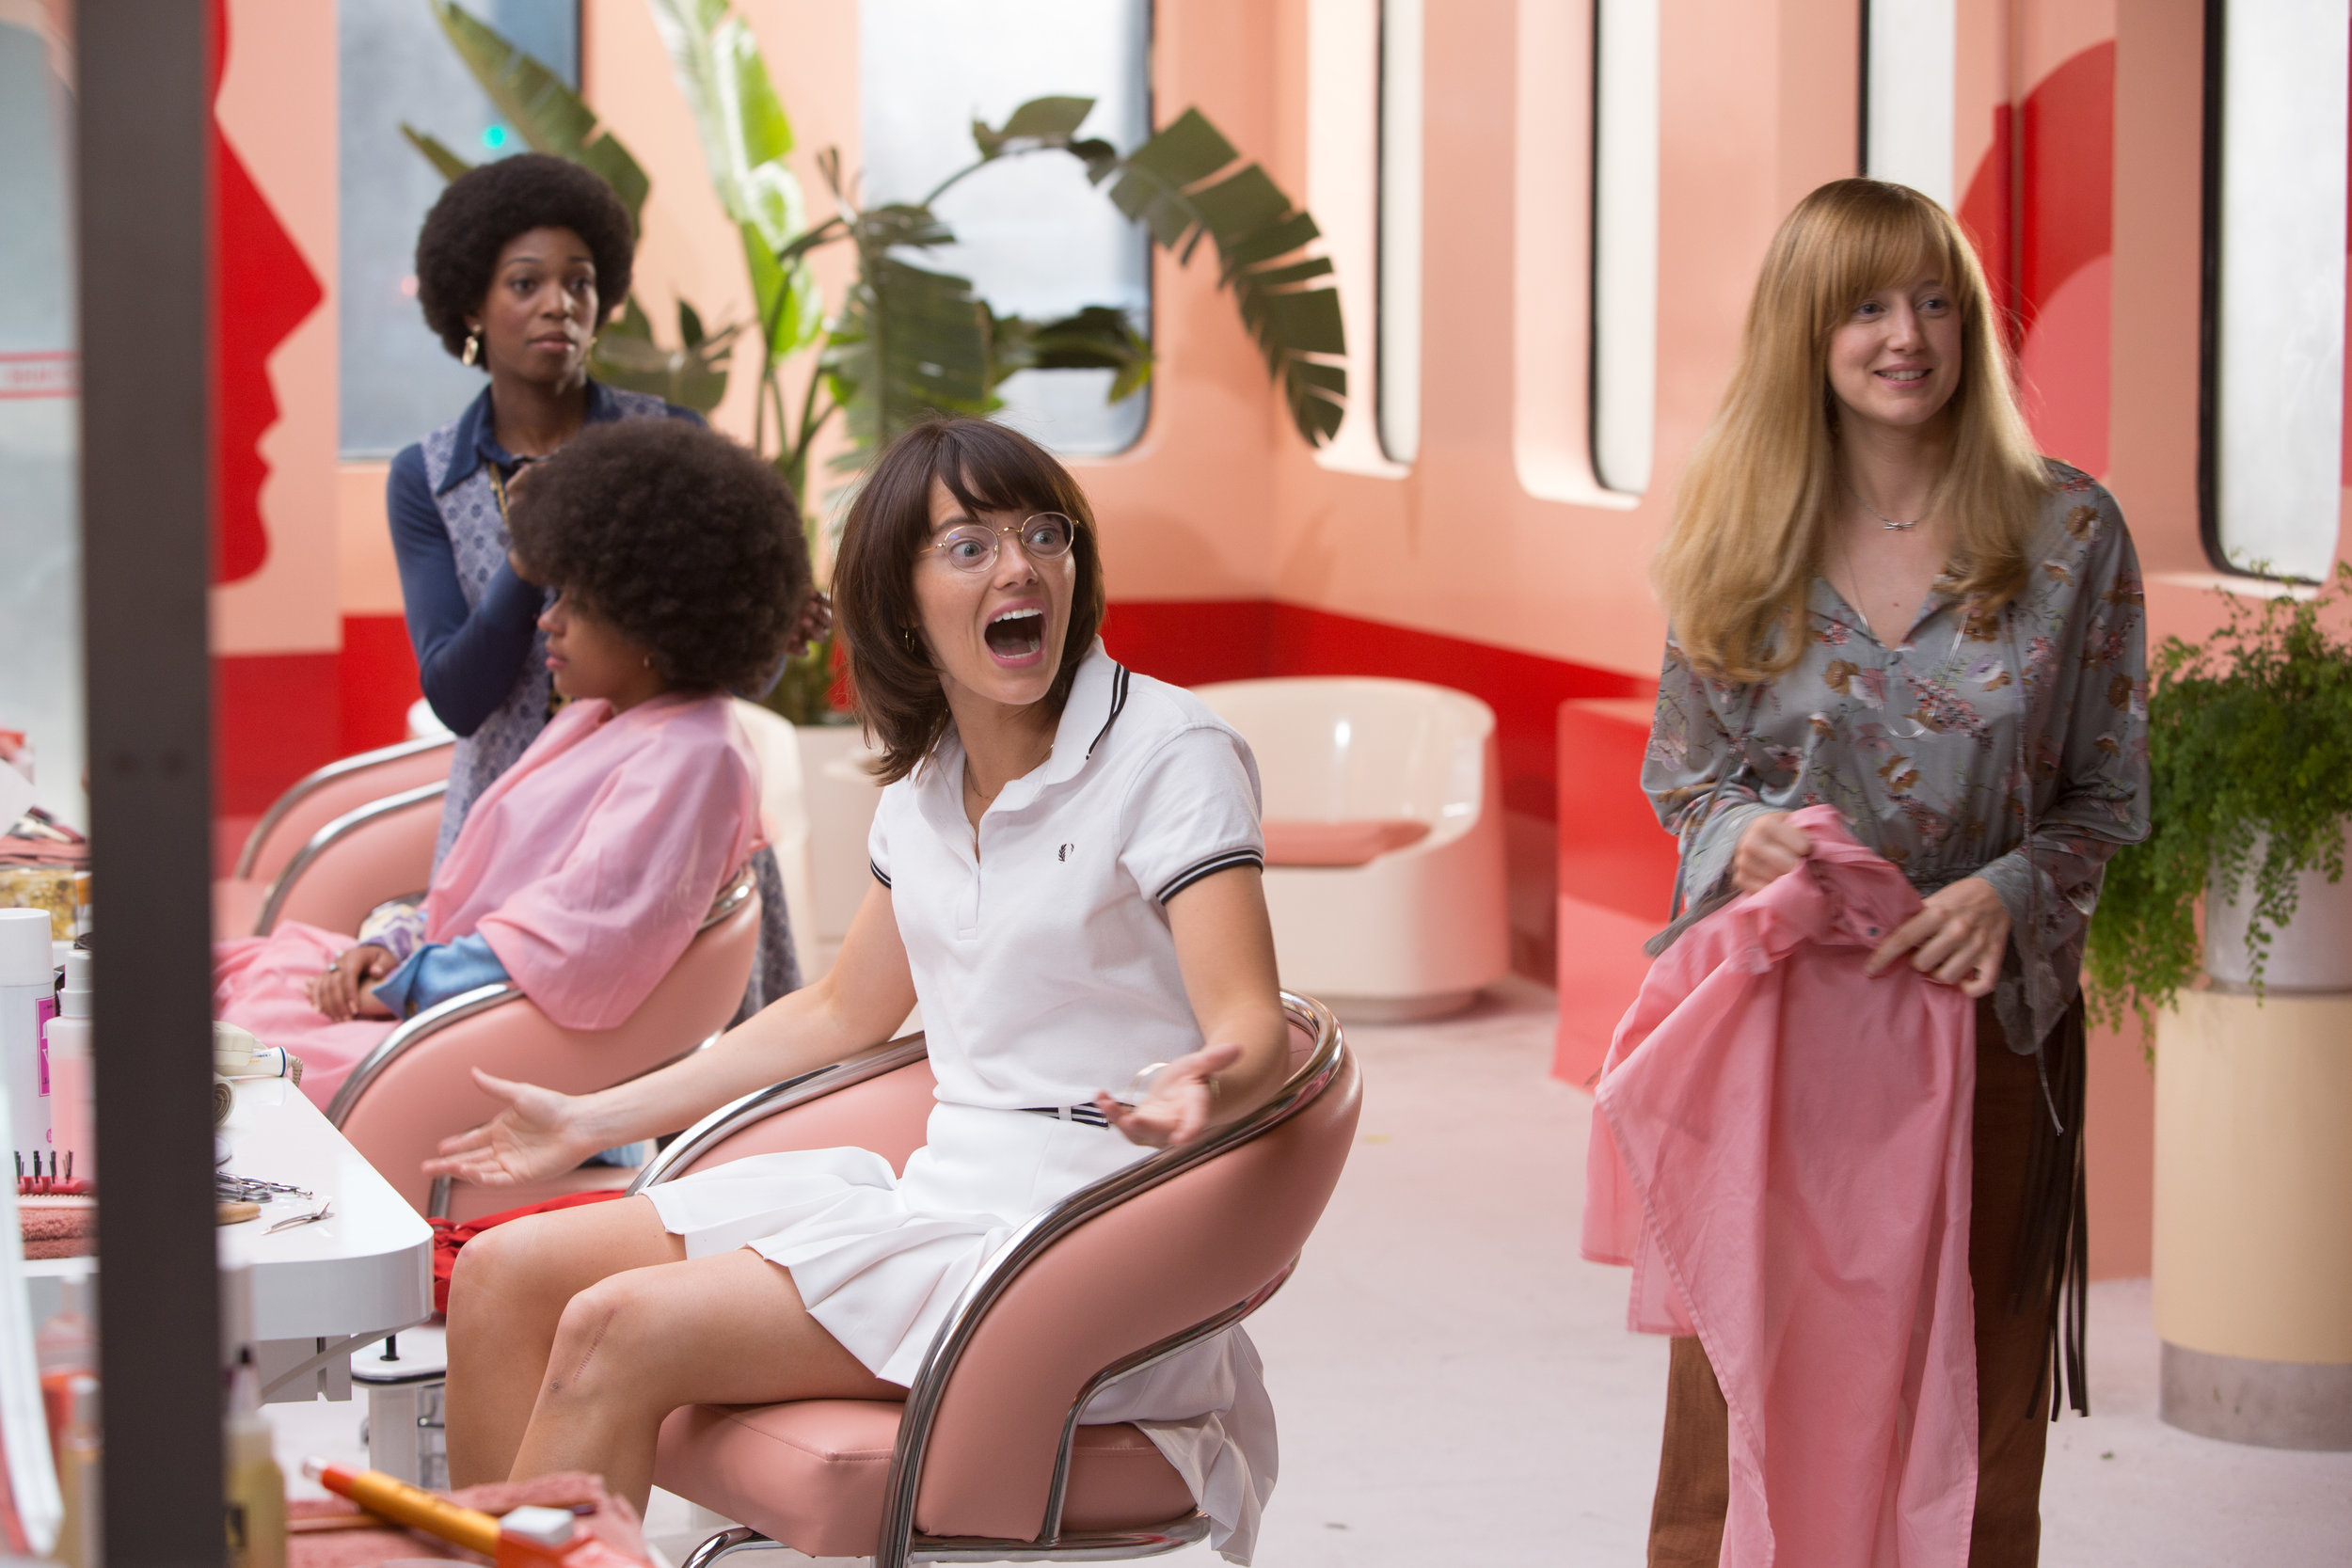 Emma Stone with Andrea Riseborough, a lover AND a hairdresser. Not a bad deal.